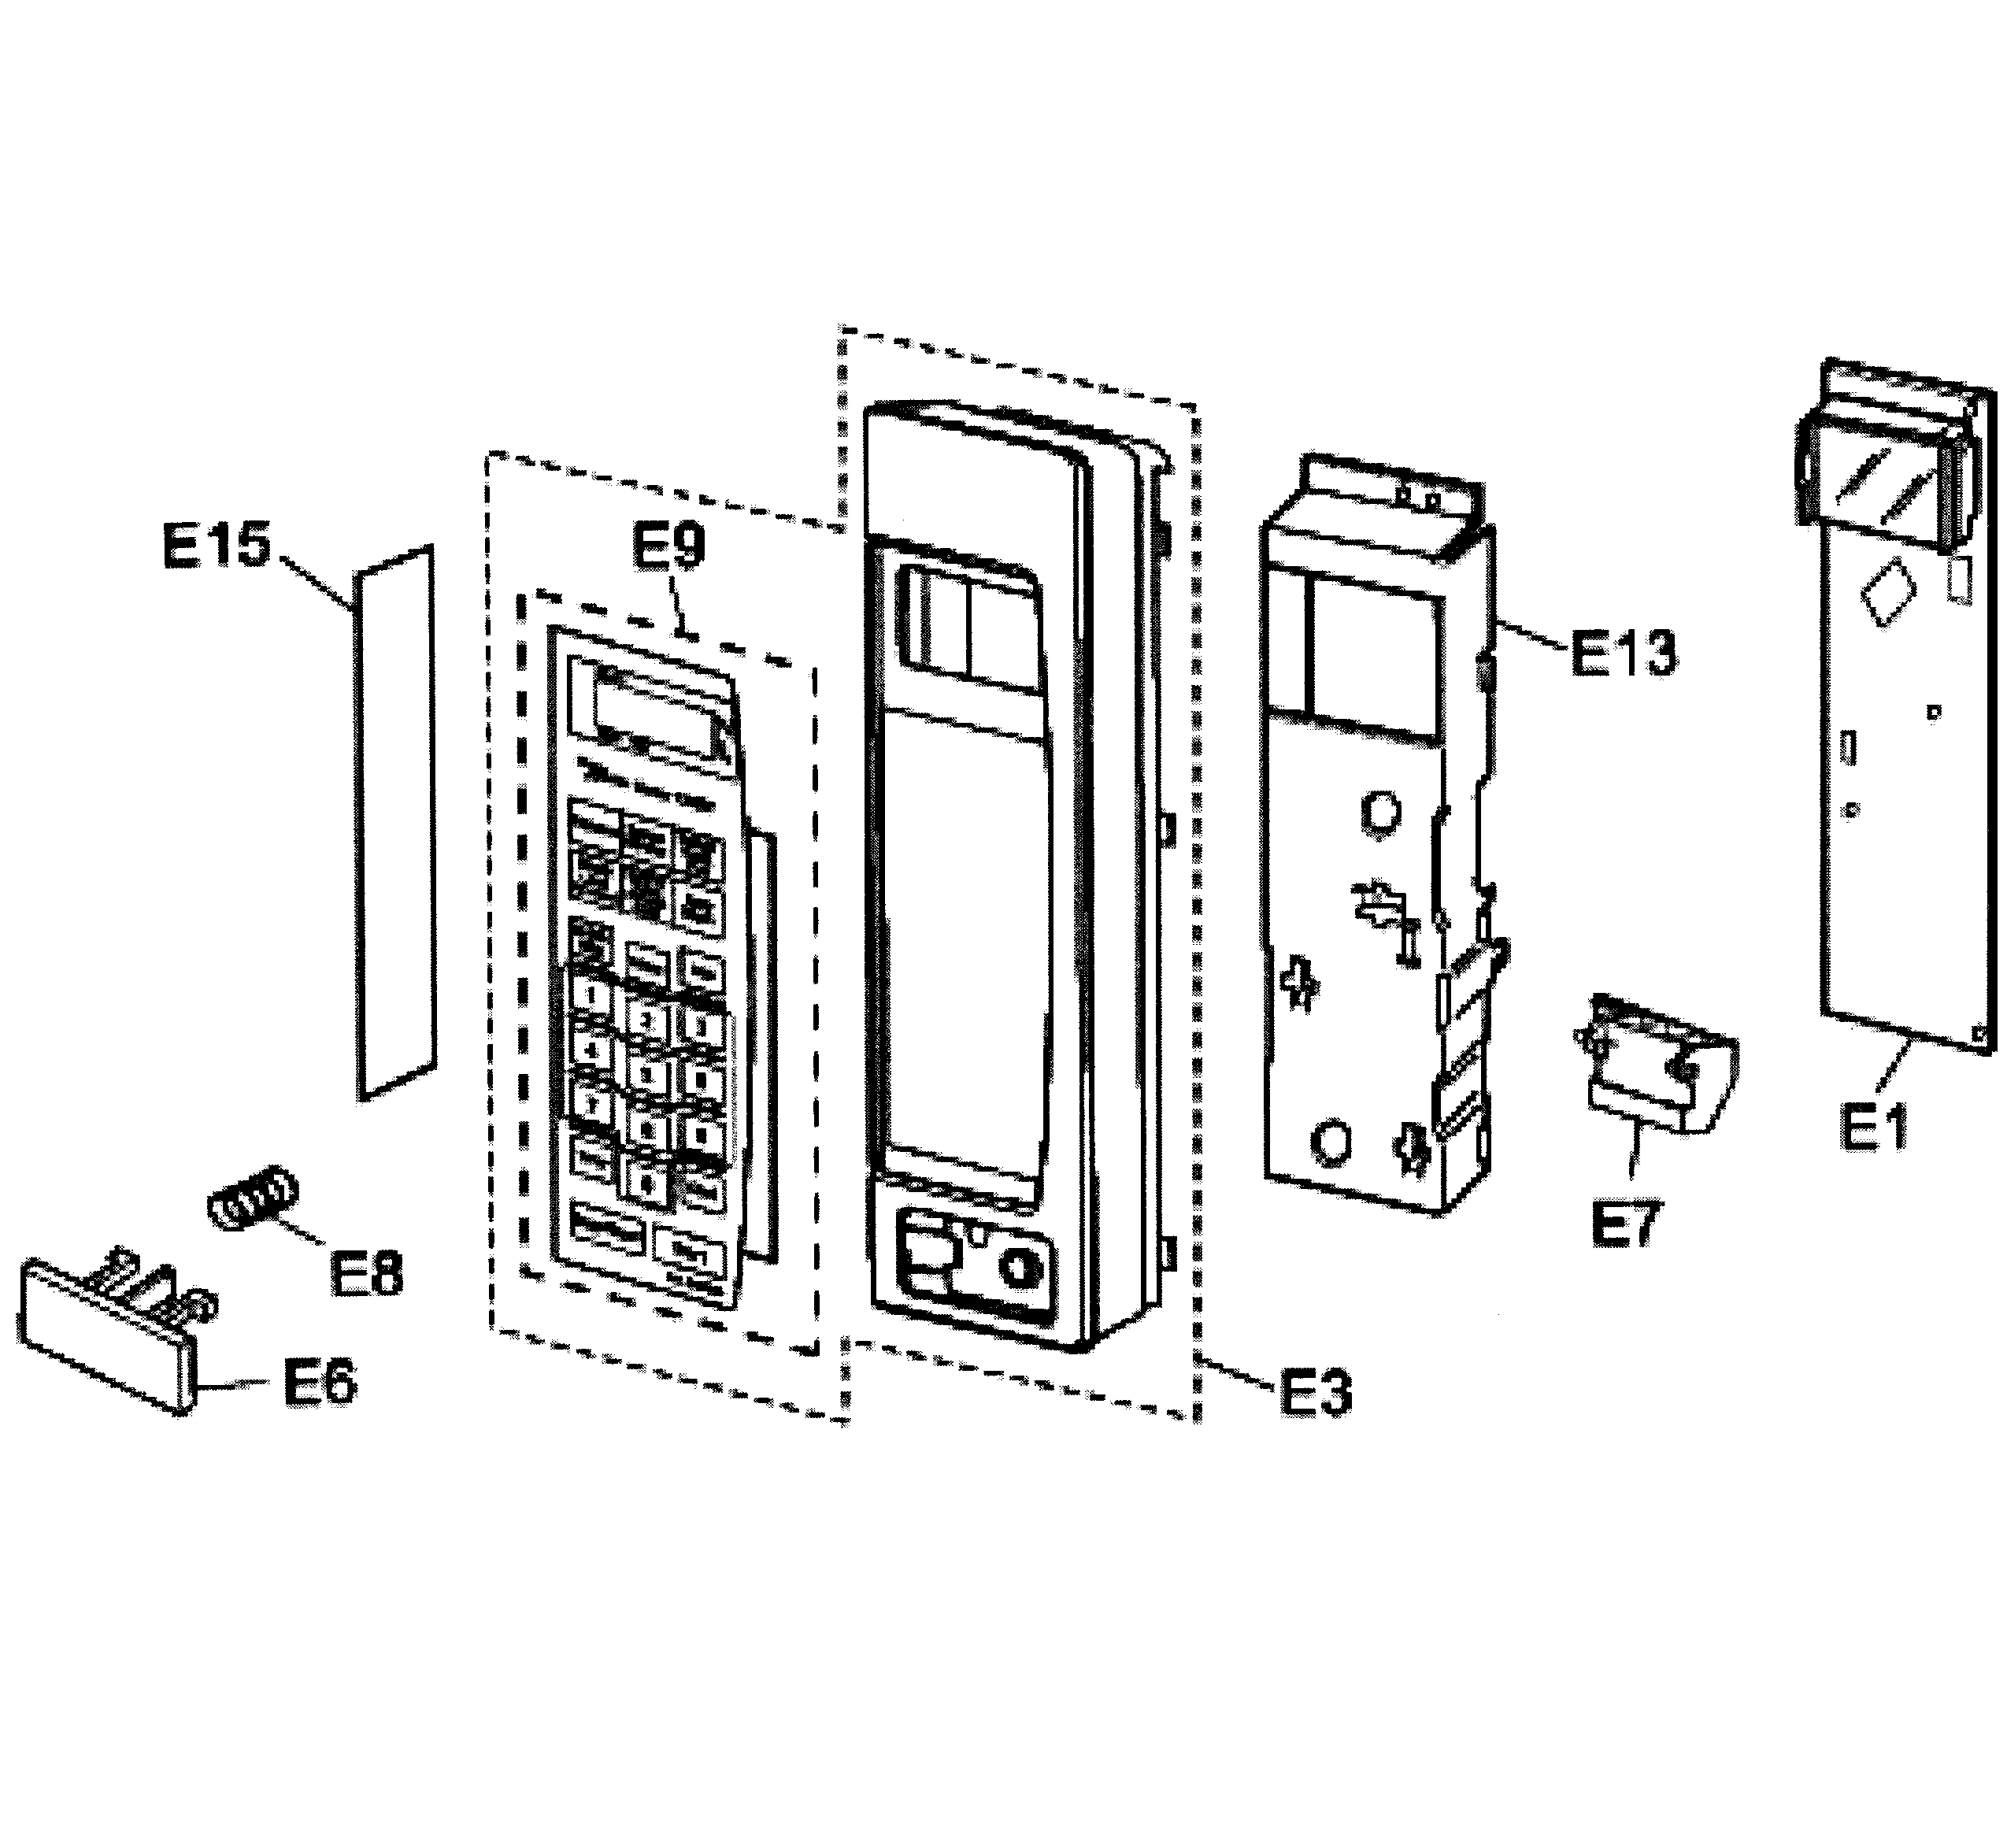 ha 8831 oven cabinet diagram and parts